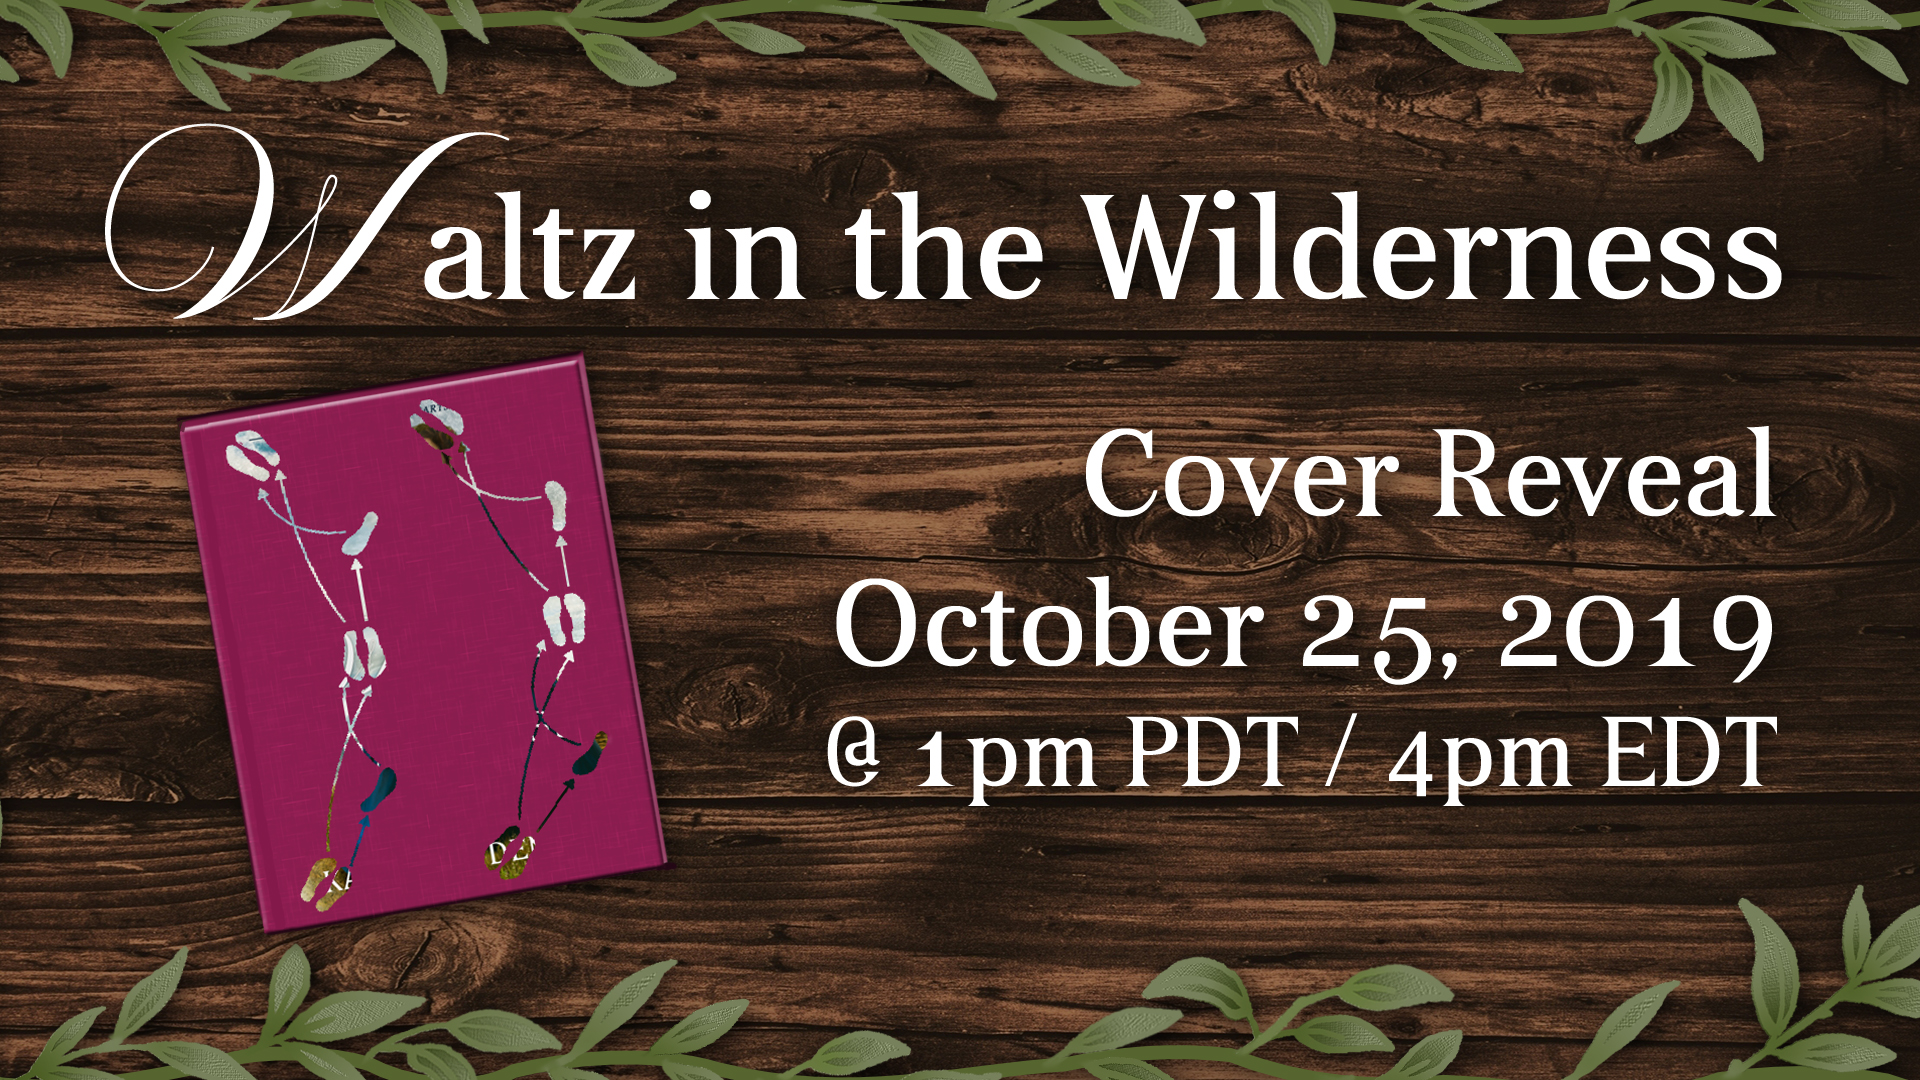 WITW Cover Reveal Image